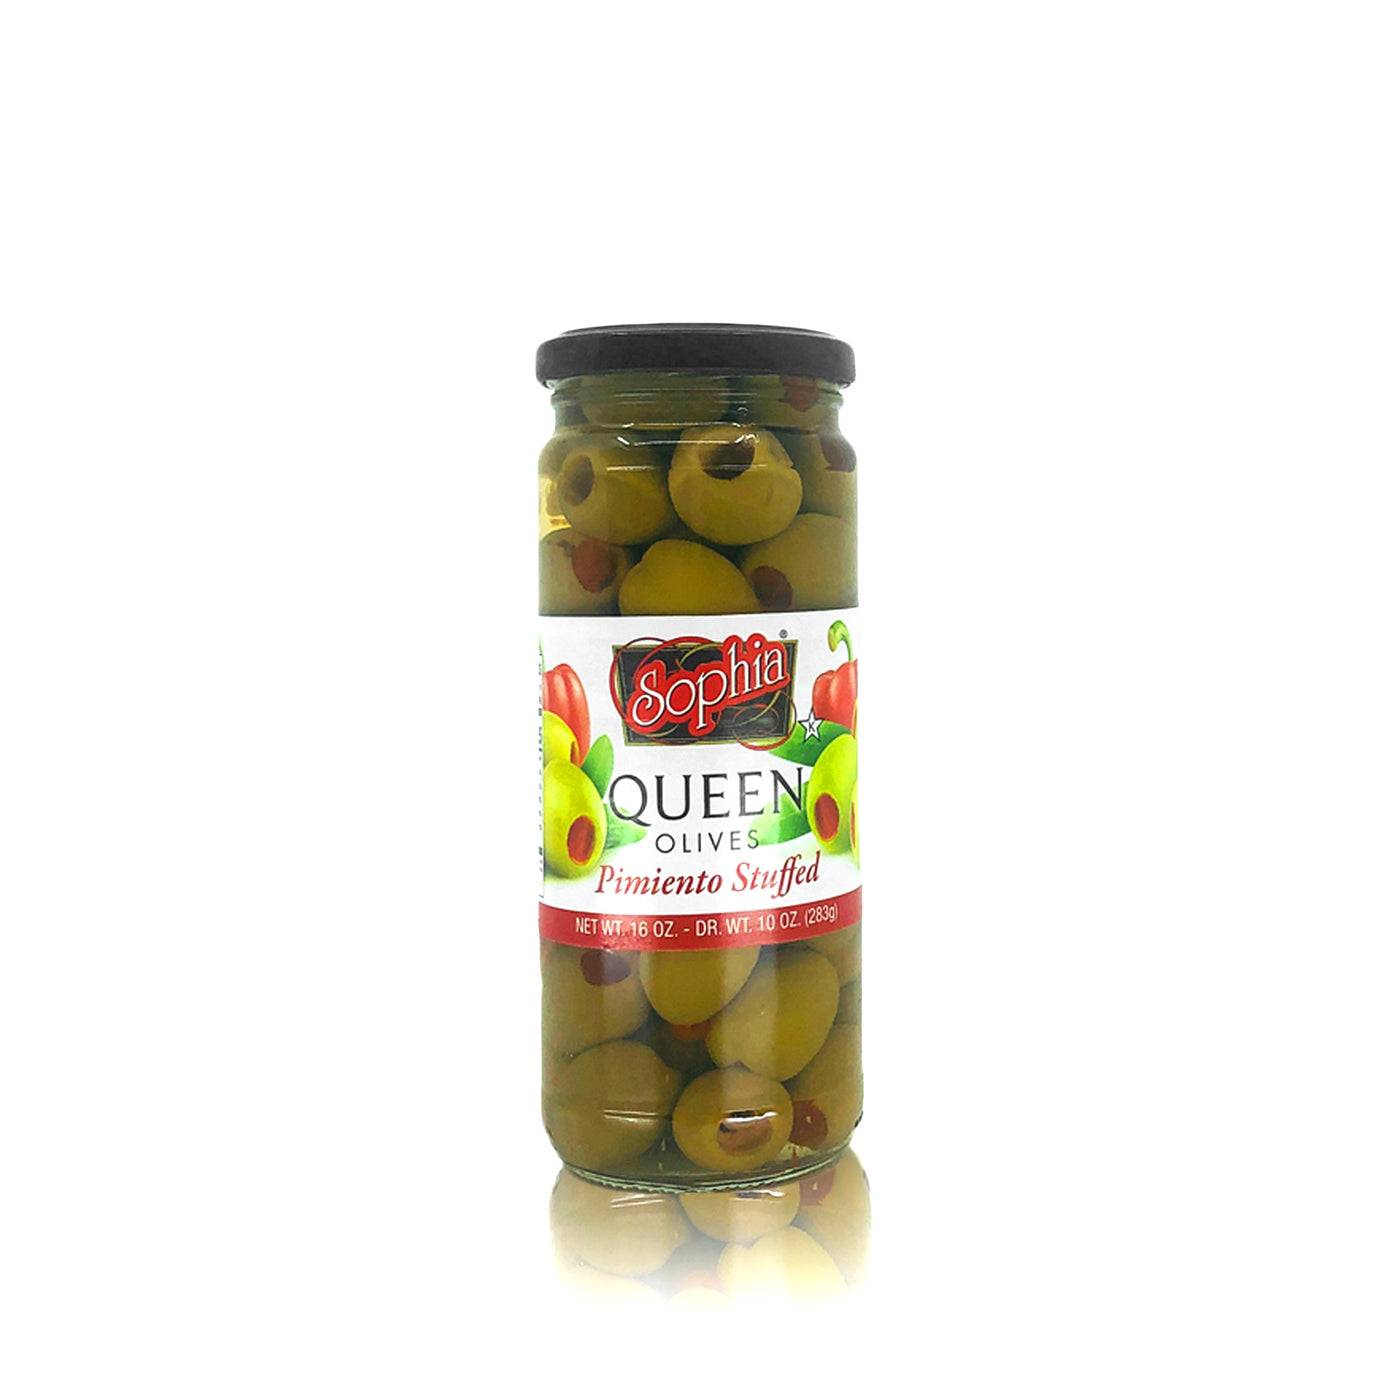 Sophia Olives - Spanish Green Queen Stuffed 16oz